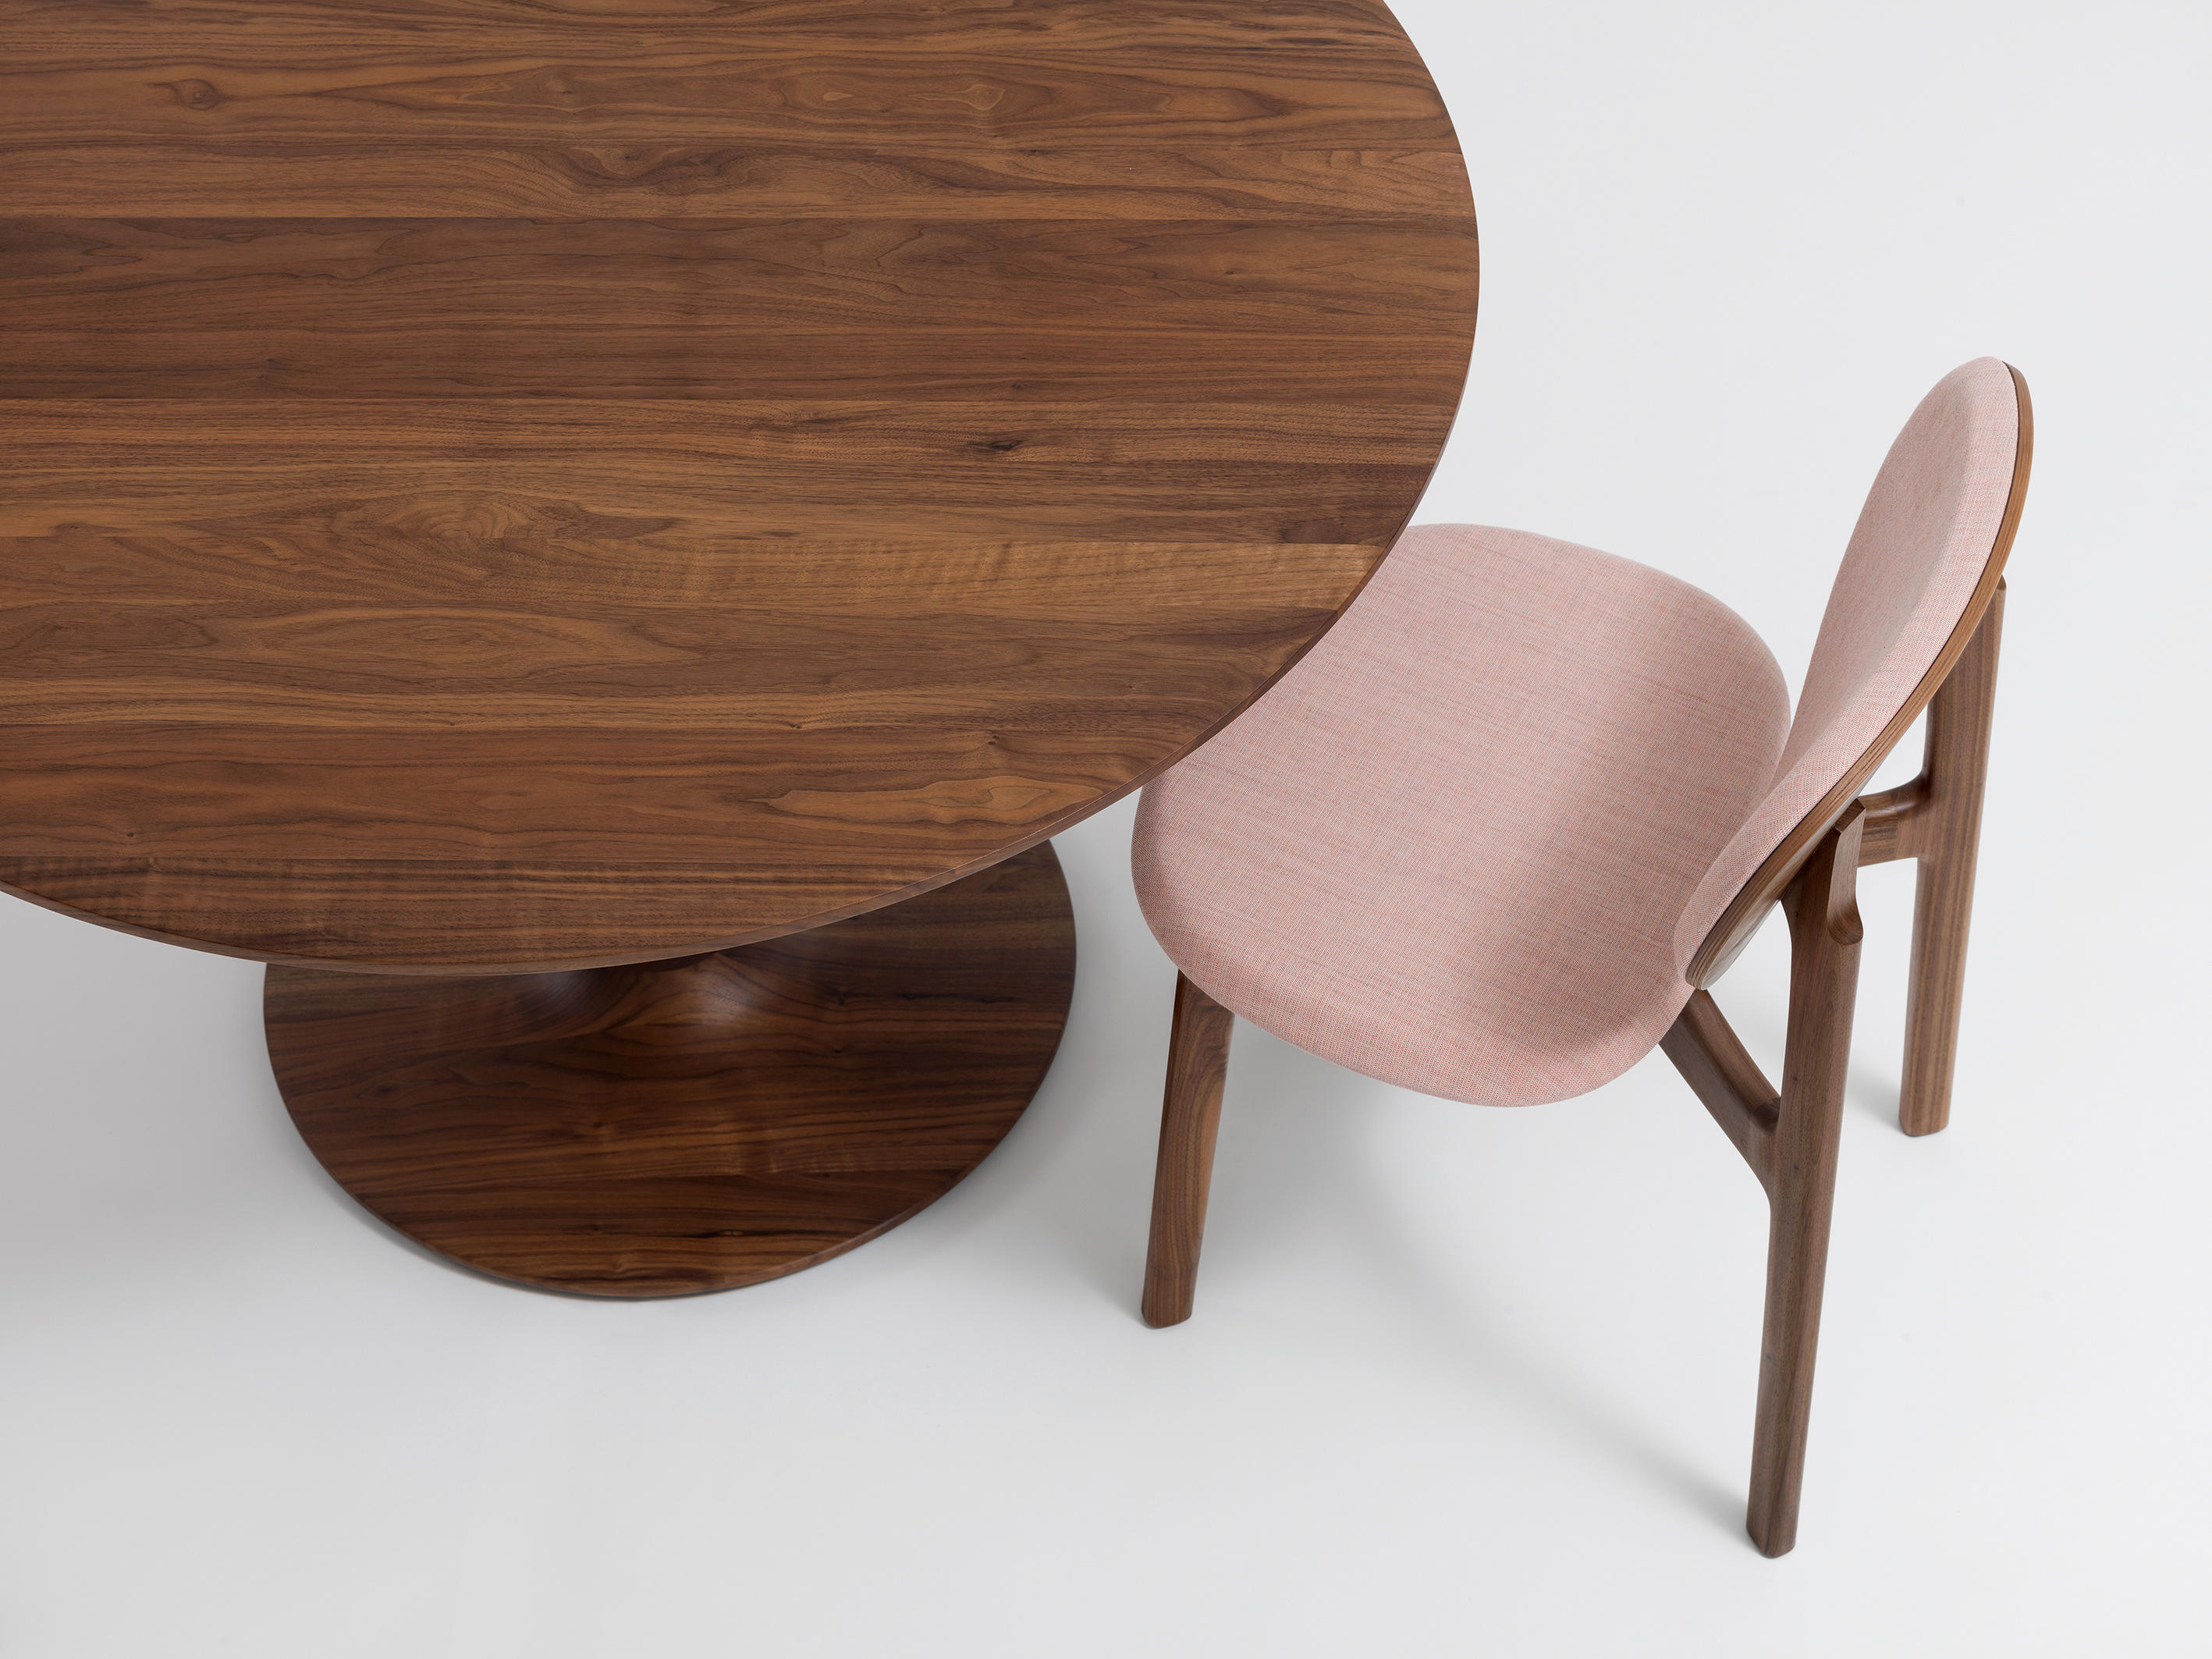 Turntable Dining Tables From Zeitraum Architonic